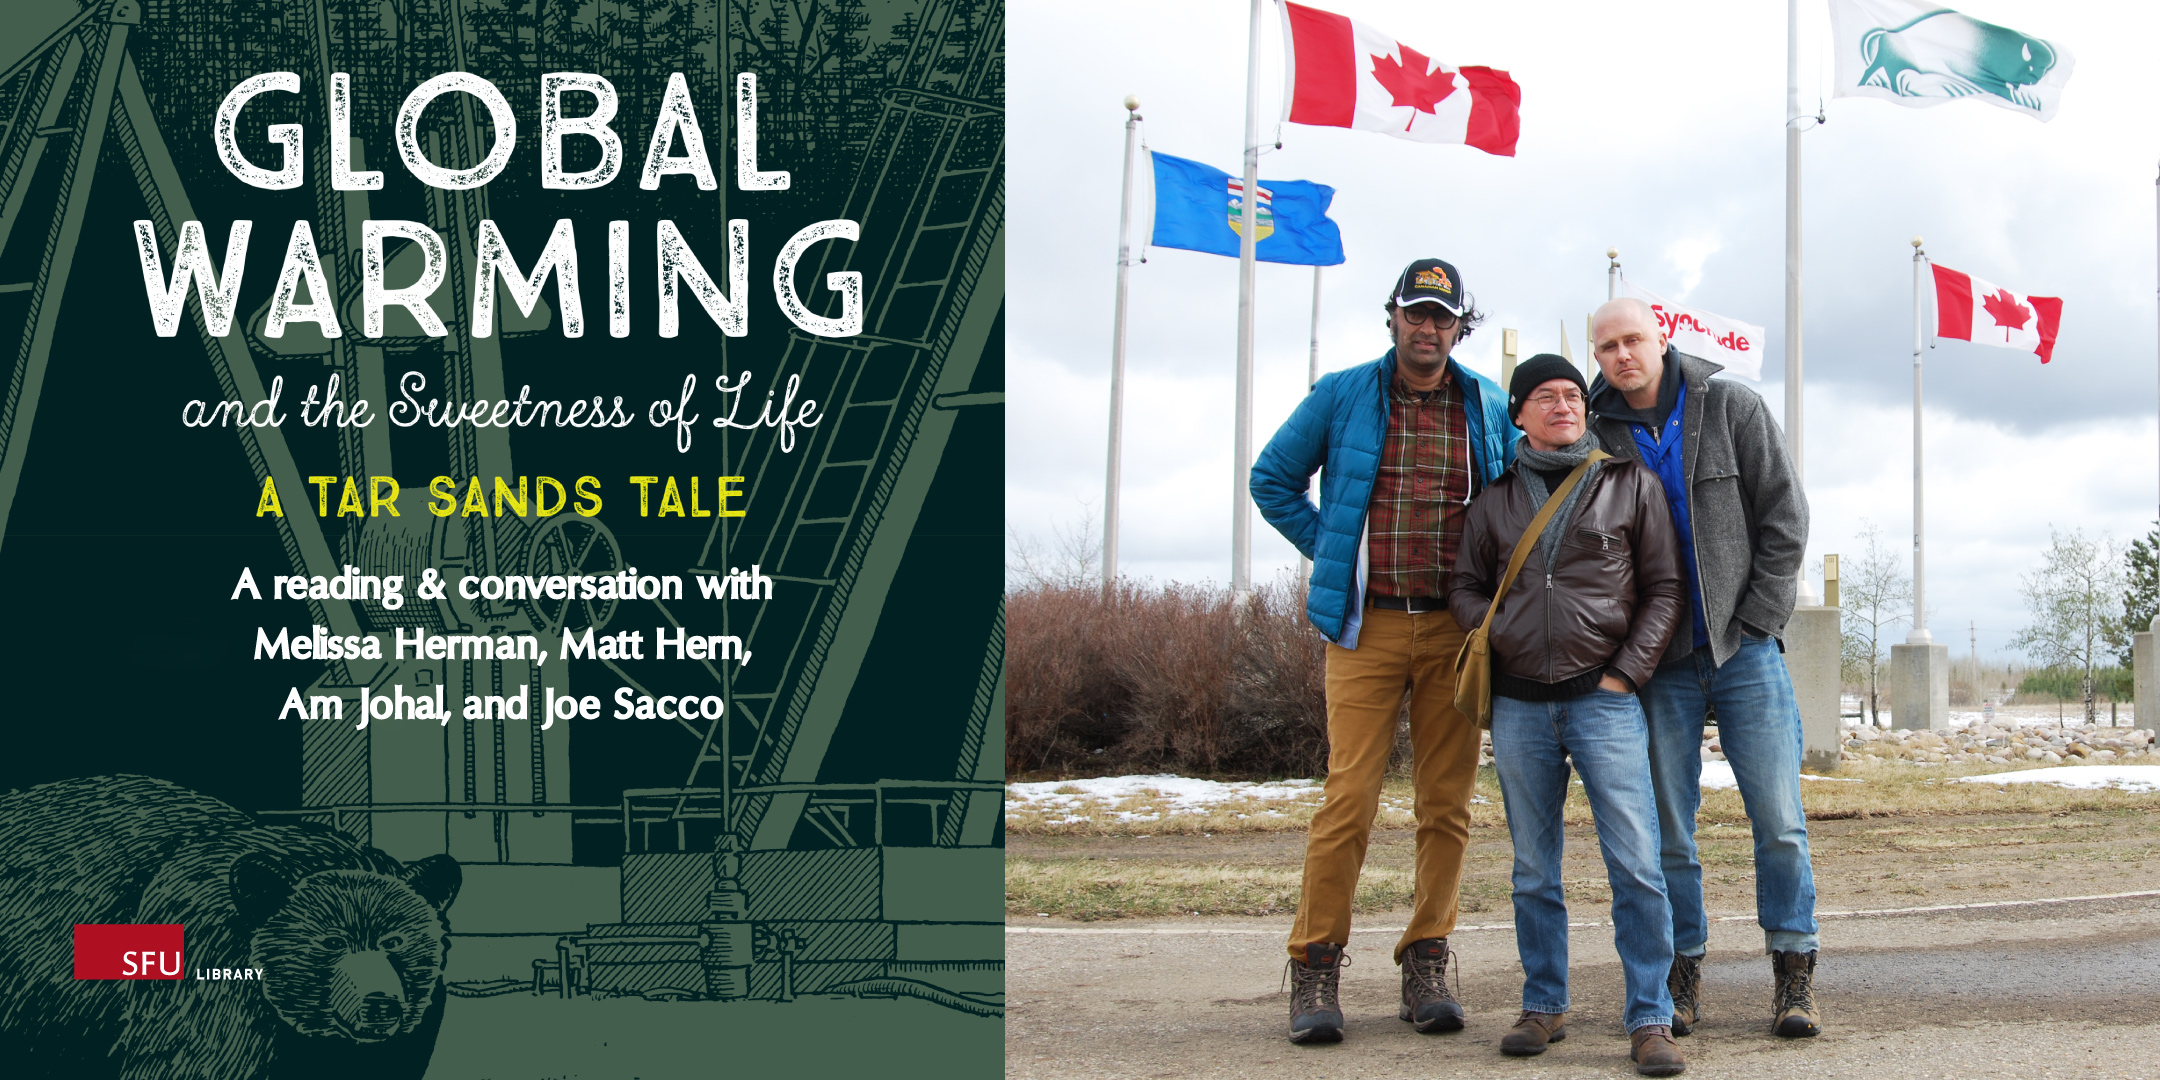 text: Global warming and the sweetness of life / a tar sands tale / a reading & conversation with Matt Hern, Am Johal, and Joe Sacco.  The three men stand in front of some flags, including a Canadian flag.